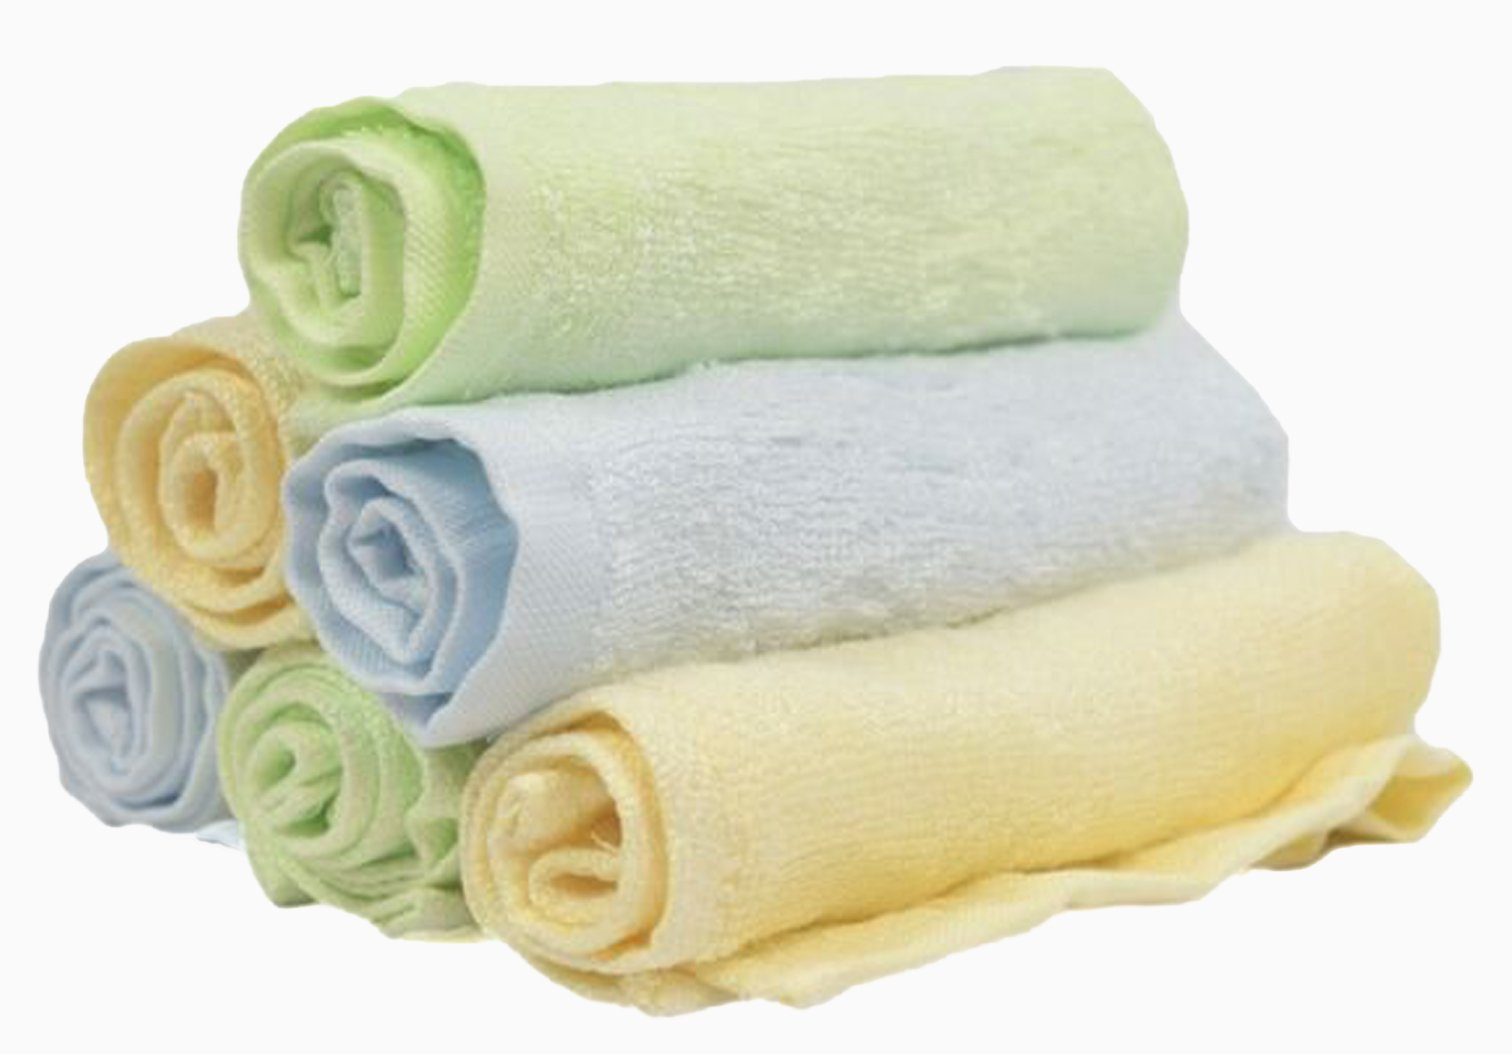 """Best Bamboo Baby Washcloths Luxuriously Soft Natural Organic Hypoallergenic Towels For Bath, Newborn Girls or Boys Face And Sensitive Skin Perfect Shower Gift Set Or Baby Registry 6 Pack 10"""" x 10"""""""